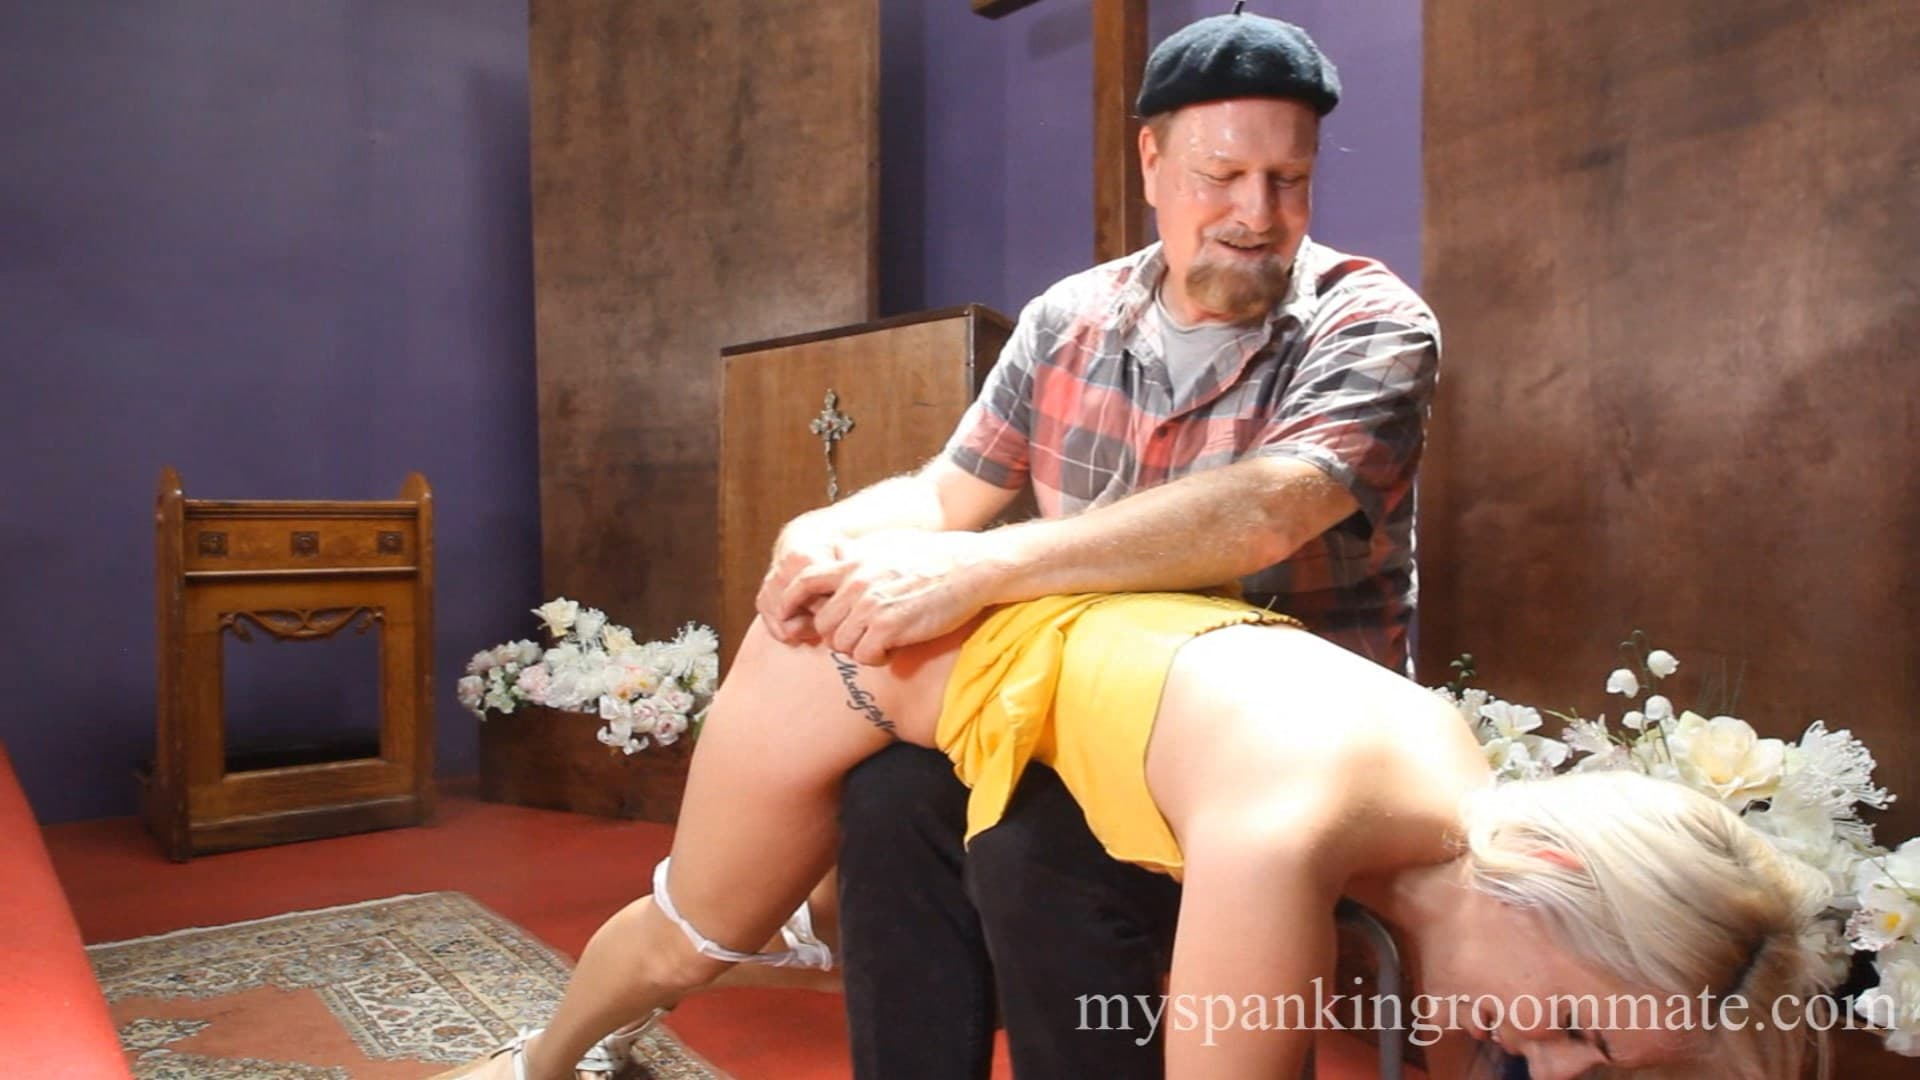 My Spanking Roommate – WMV/Full HD – Dria – Dria Spanked In Church